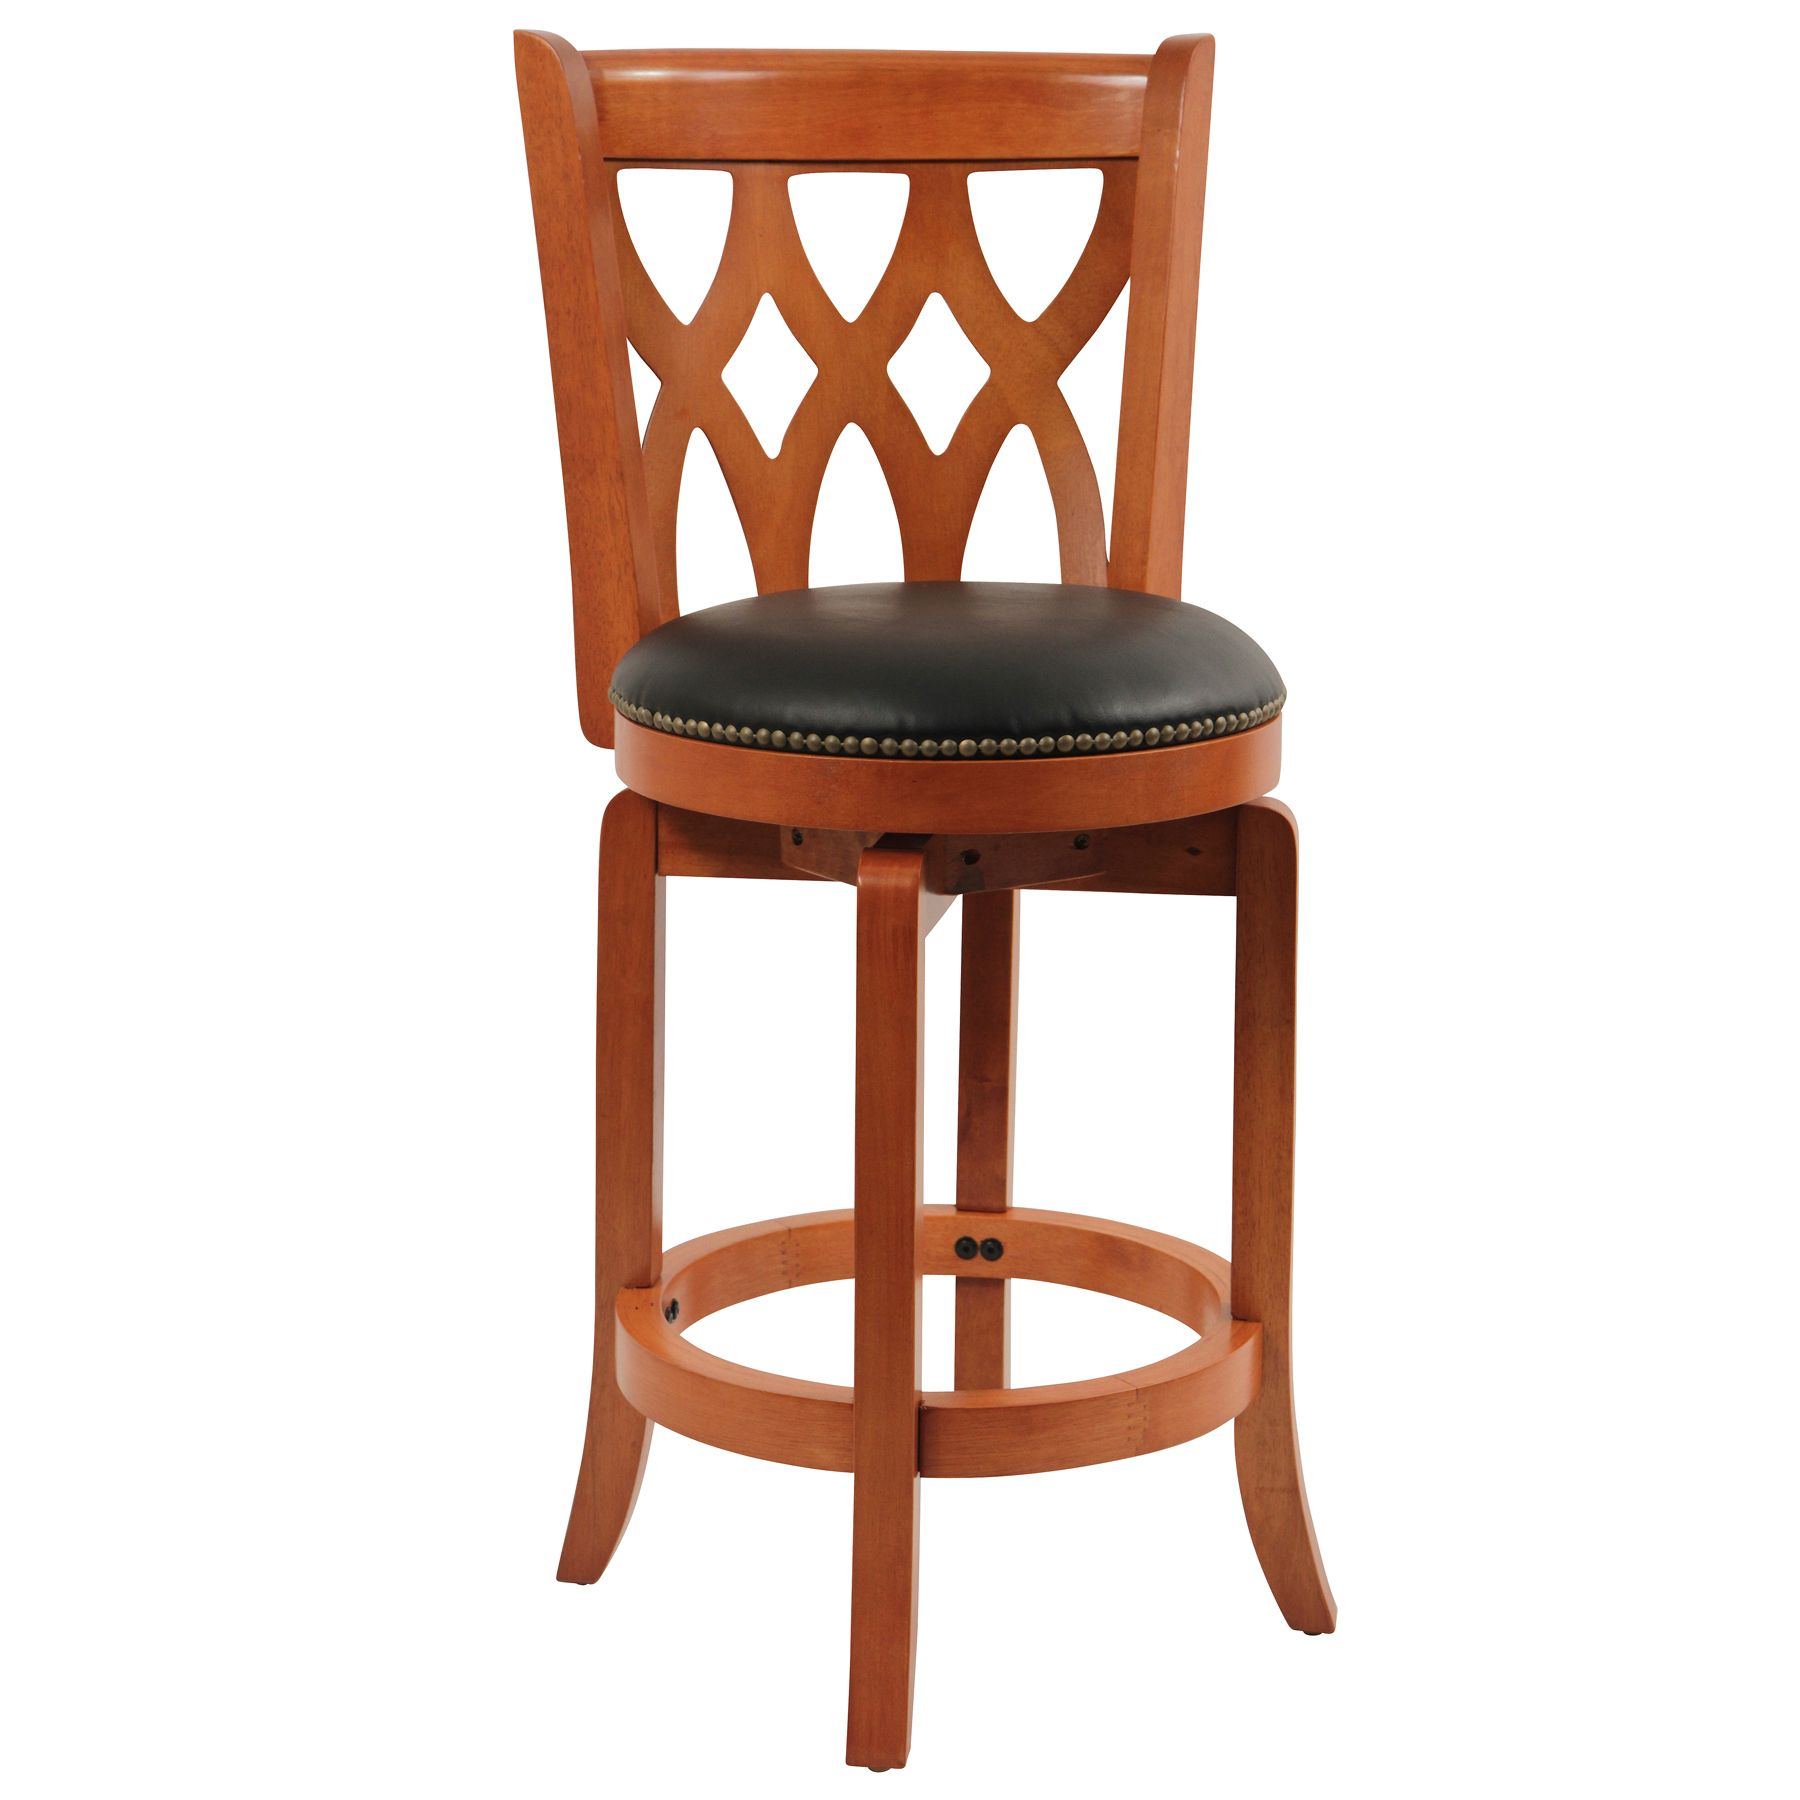 24 inch counter chairs baby swing chair very boraam cathedral stool